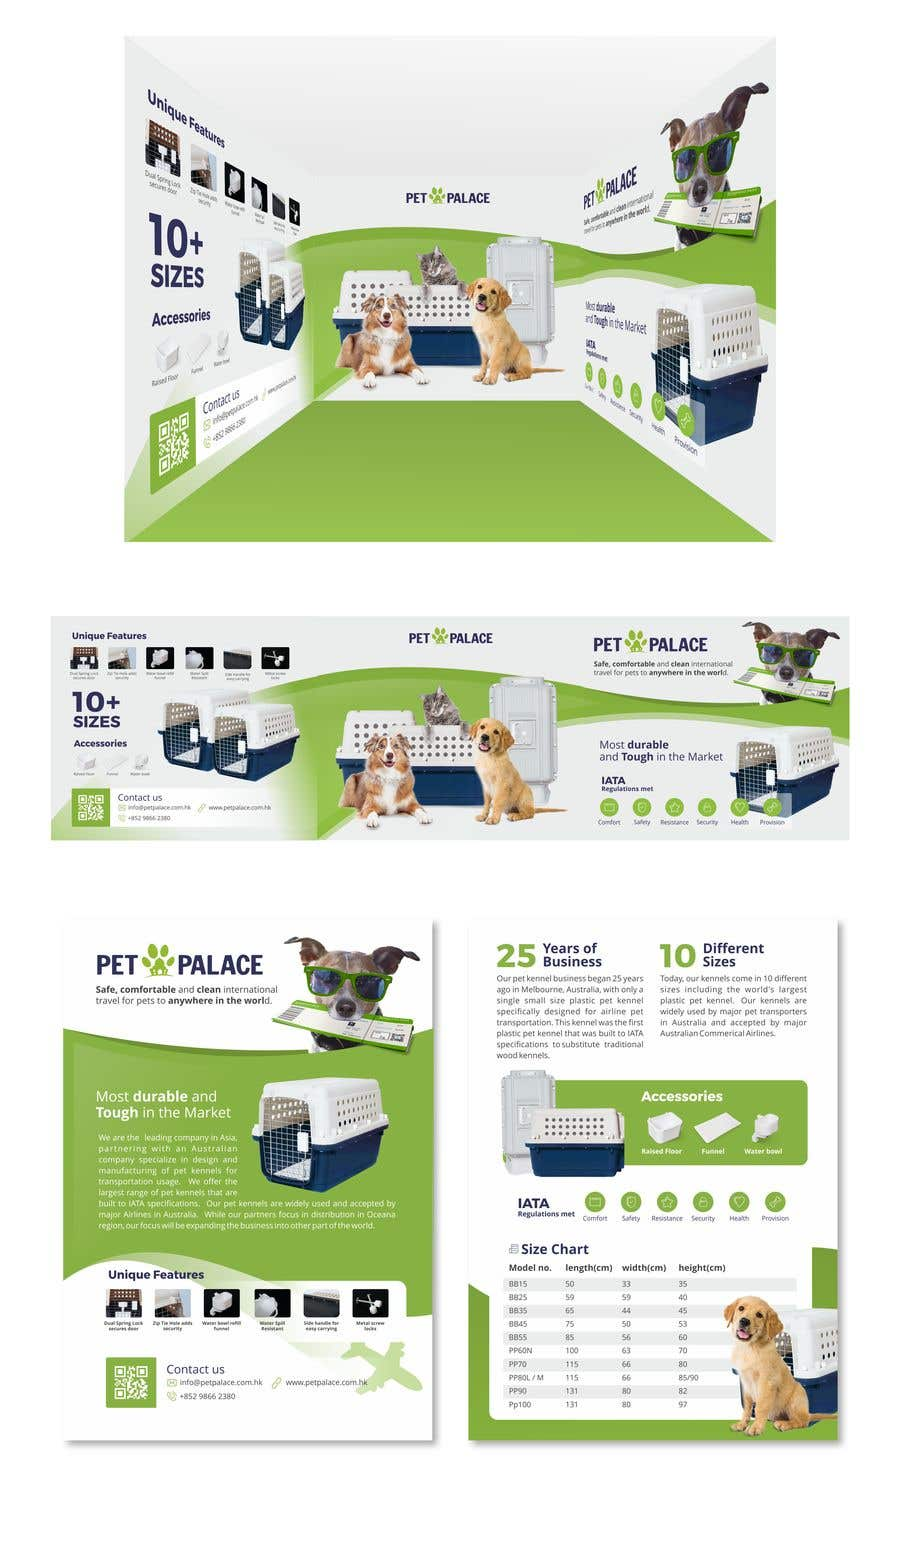 Proposition n°26 du concours Exhibition Booth Wall Deco Design and Flyer Design